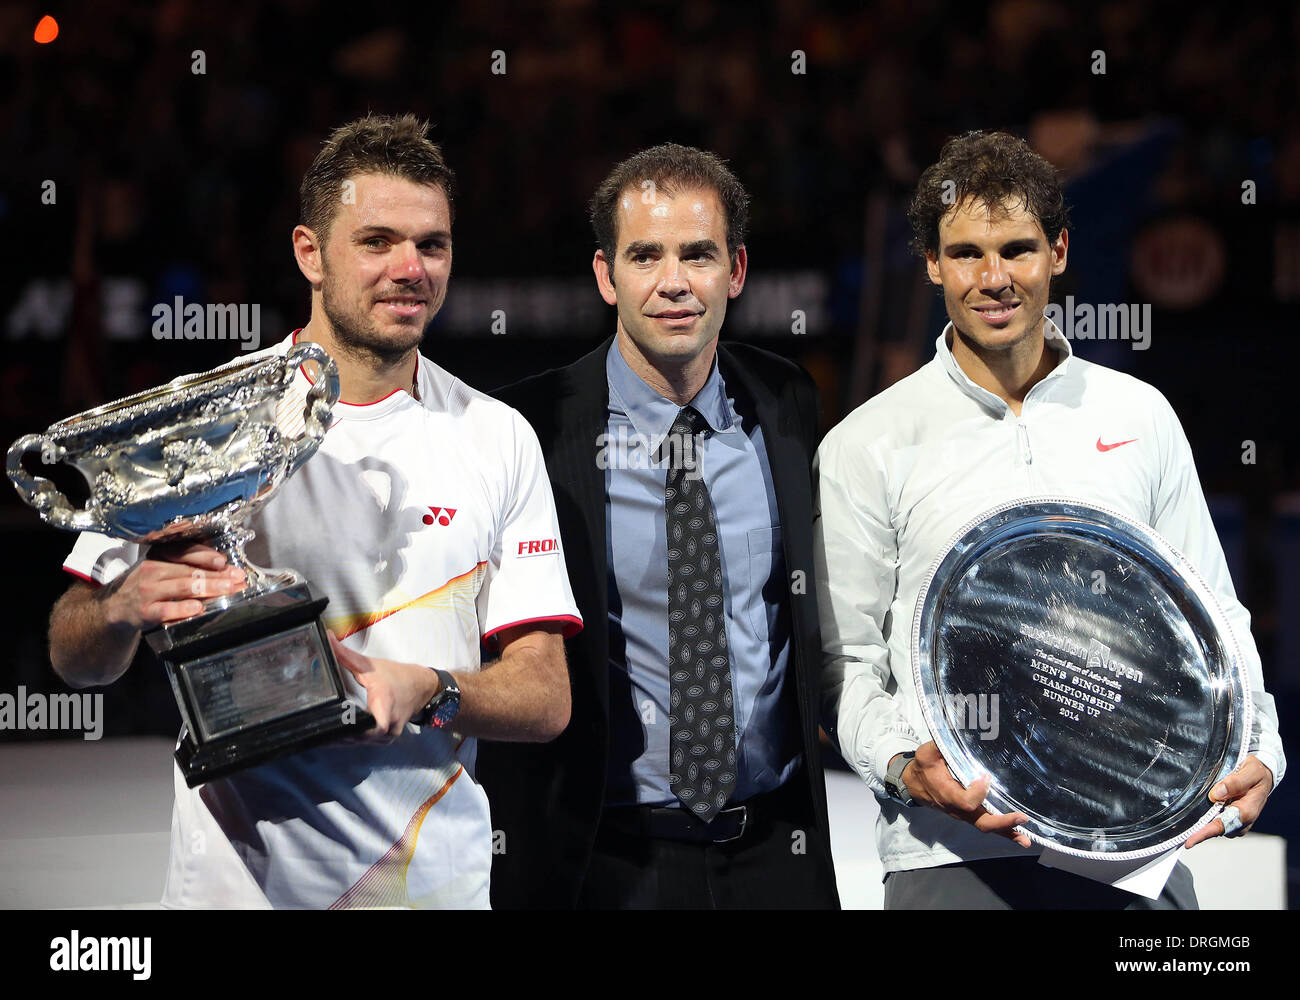 Melbourne, Australia. 26th Jan, 2014. Stanislas Wawrinka (L) of Switzerland and Rafael Nadal (R) of Spain pose with former US tennis player and 14-time grand slam champion Pete Sampras during the awarding ceremony after their men's singles final match at 2014 Australian Open tennis tournament in Melbourne, Australia, Jan. 26, 2014. Stanislas Wawrinka won 3-1 to be the champion. Credit:  Xu Yanyan/Xinhua/Alamy Live News - Stock Image